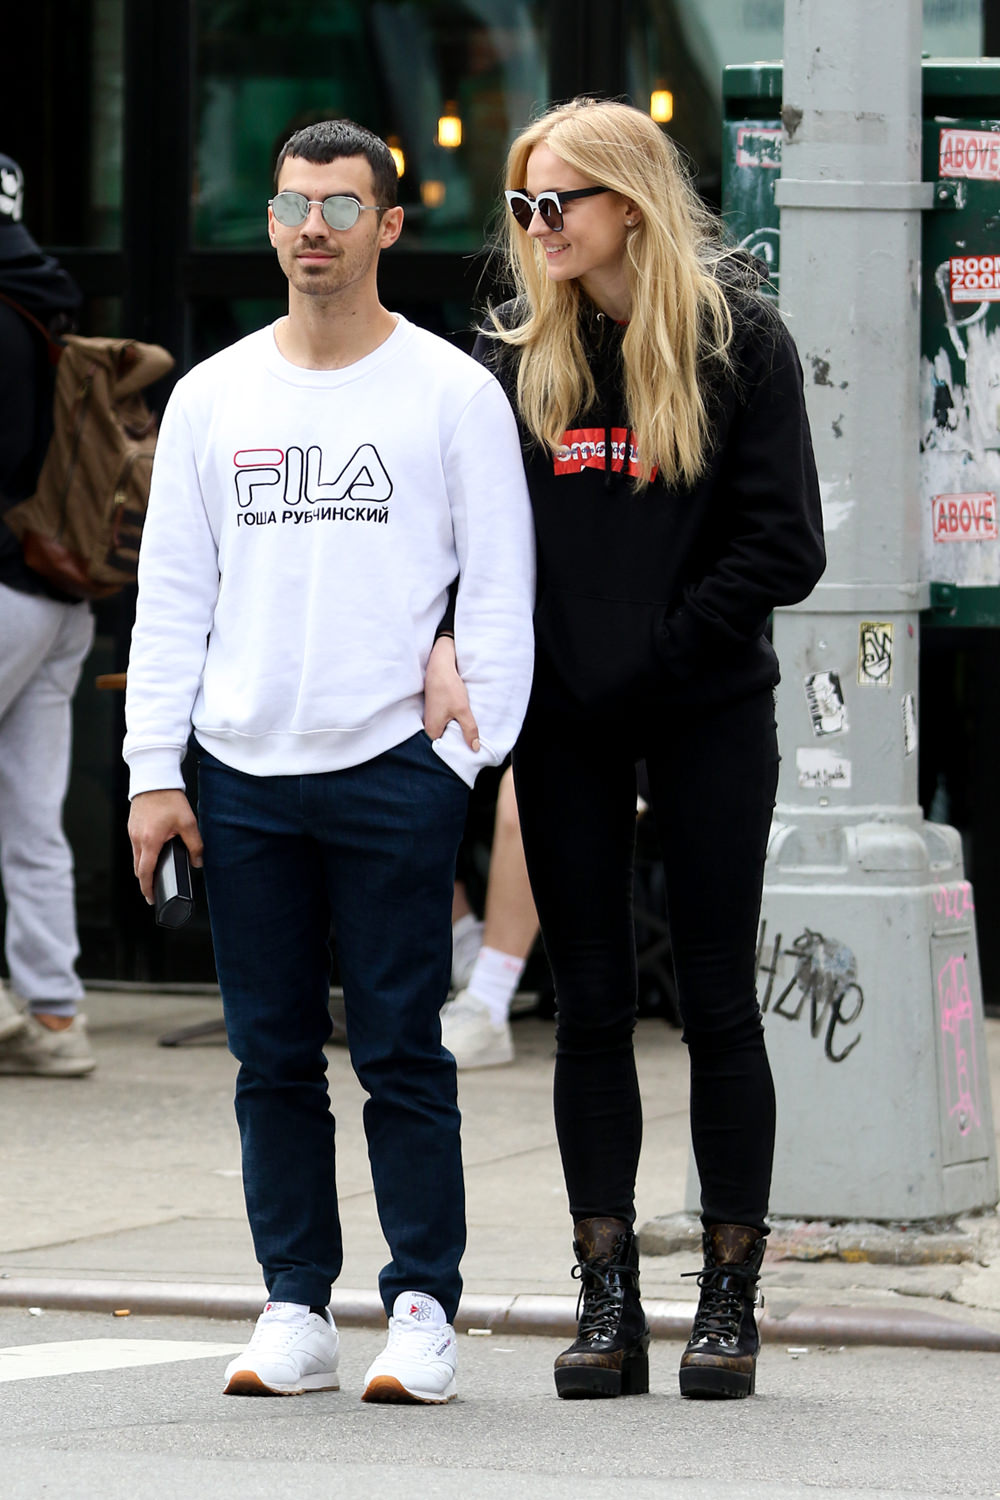 Joe-Jonas-Sophie-Turner-GOTSNYC-SoHo-Fashion-Street-Style-Tom-Lorenzo-Site-1.jpg